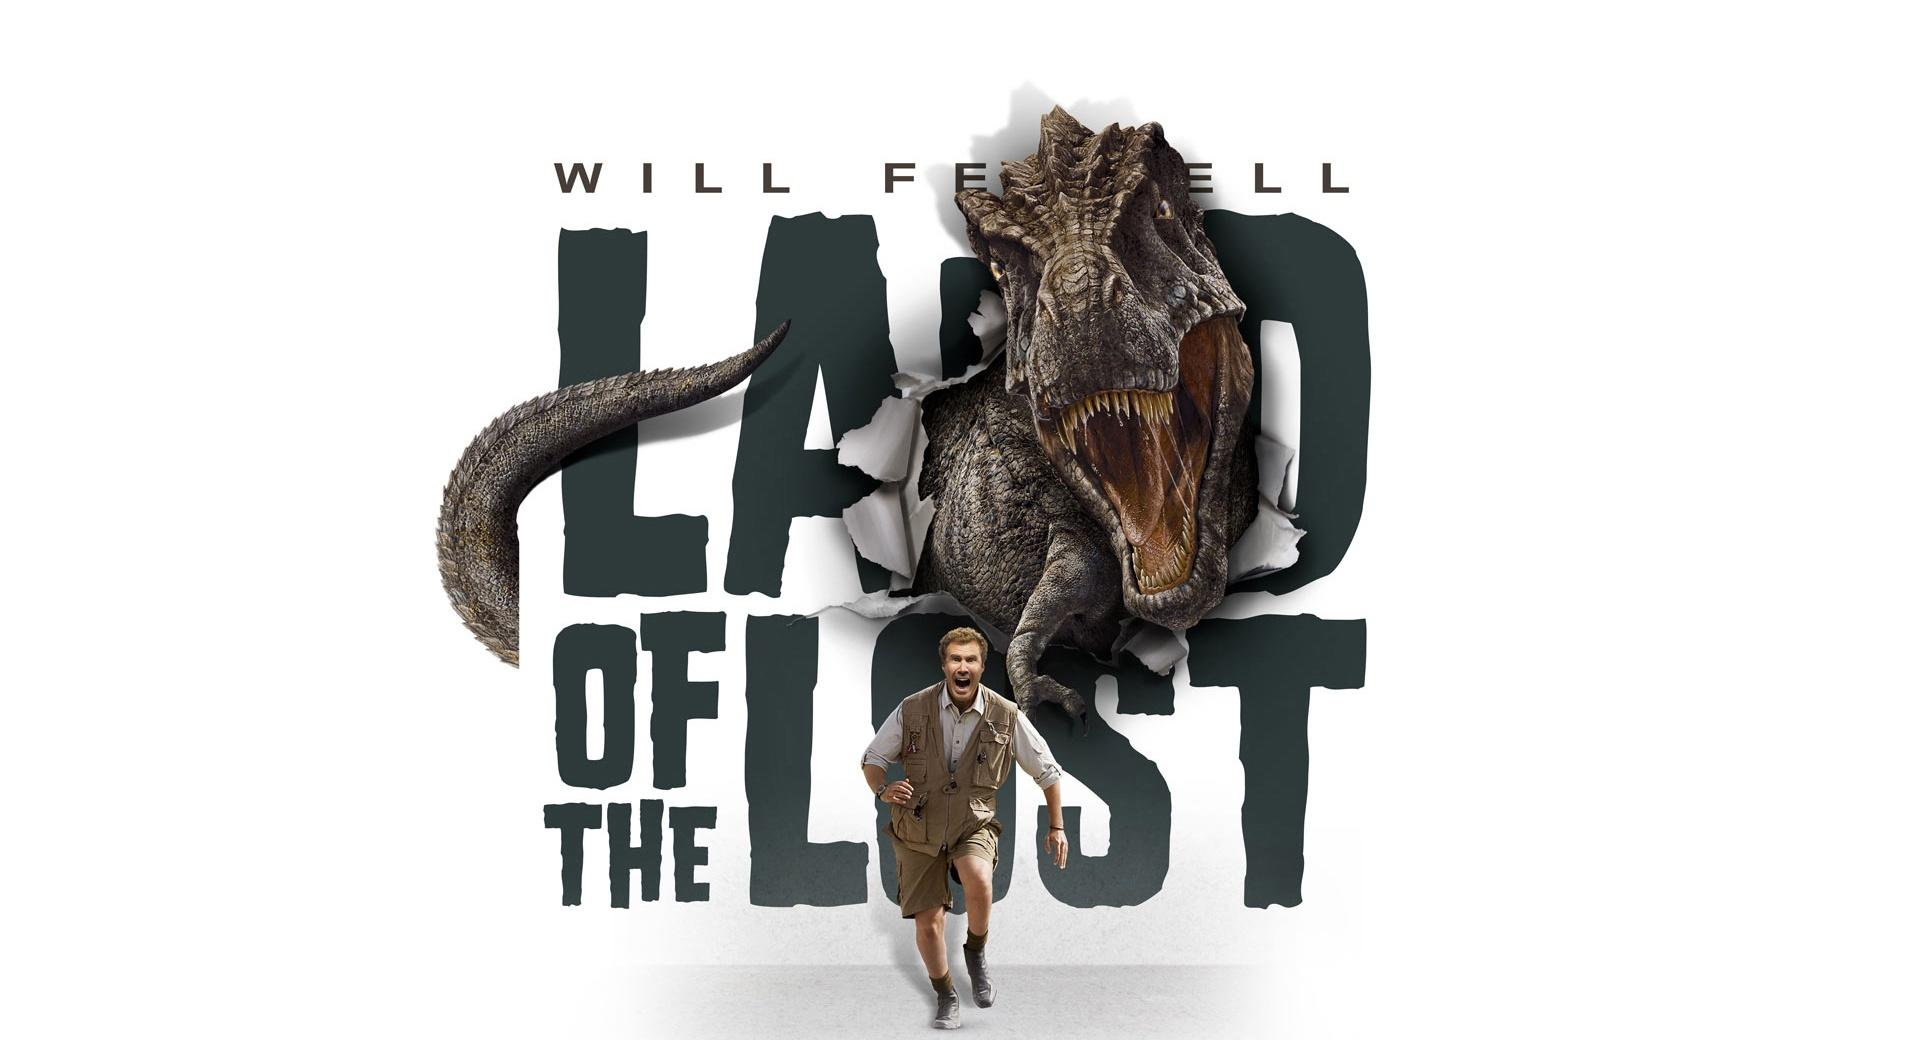 Land Of Lost wallpapers HD quality